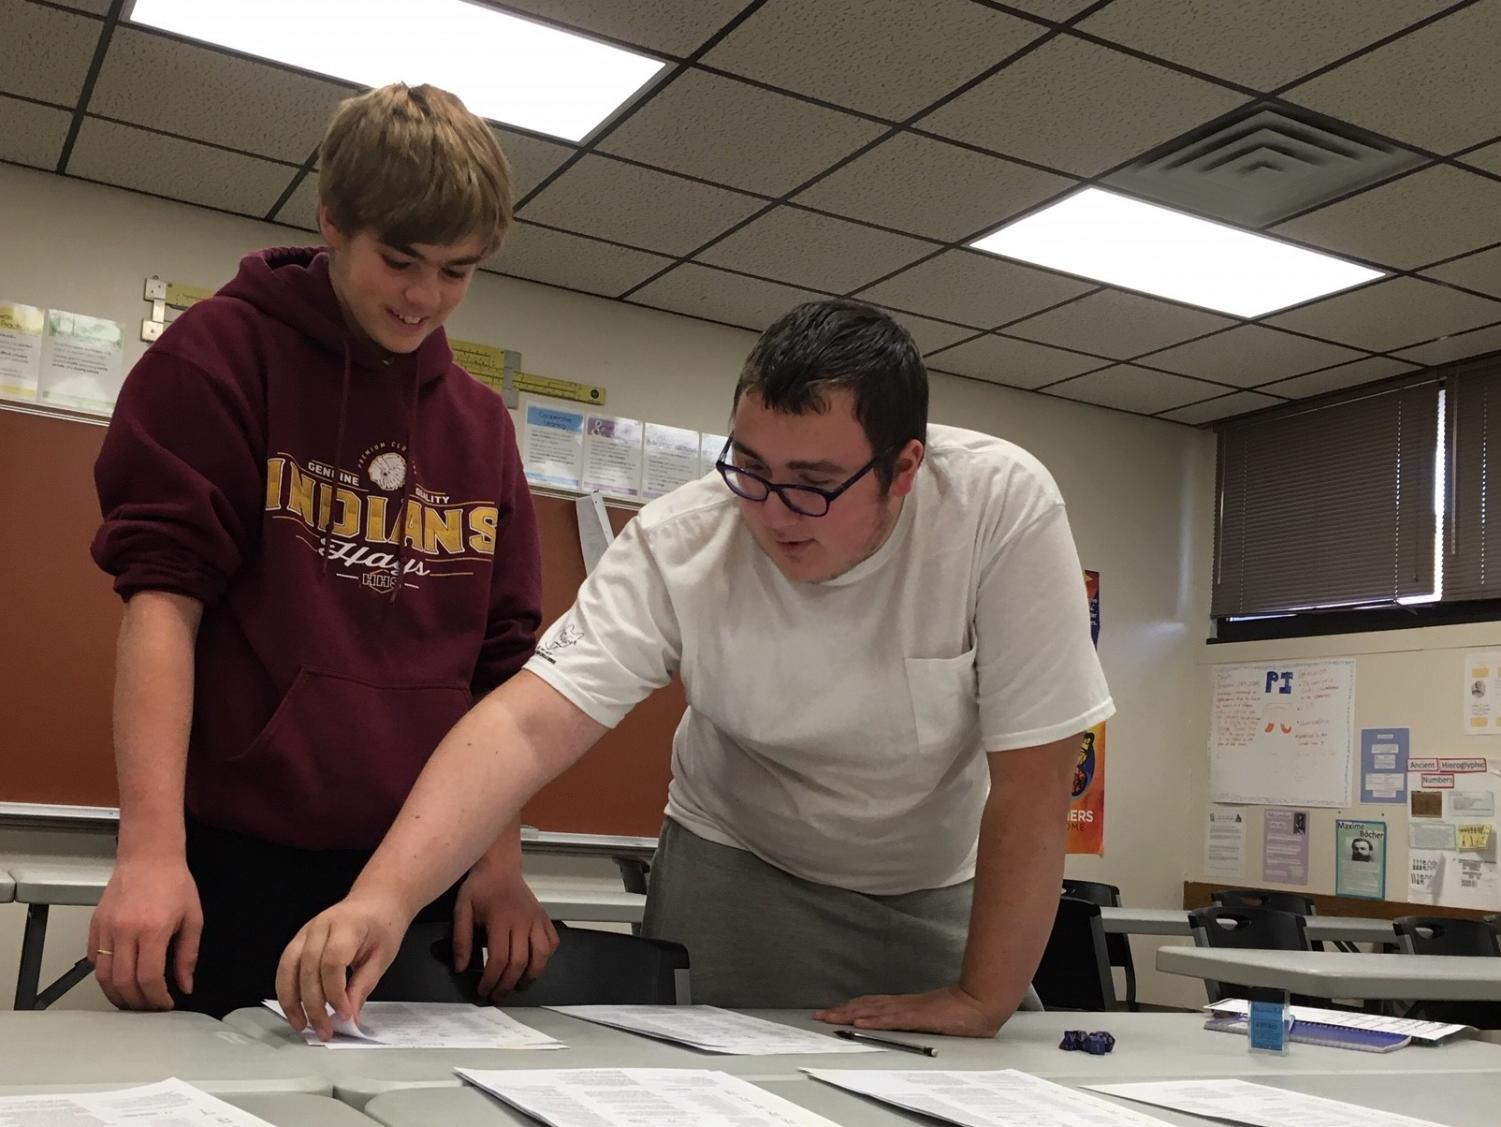 Juniors John Garner (left) and John Rupe (Right) look over character sheets during the Dungeons and Dragons meeting. The club met for the first time after school on Oct. 21 in room 121. Approximately 12 students attended the meeting.